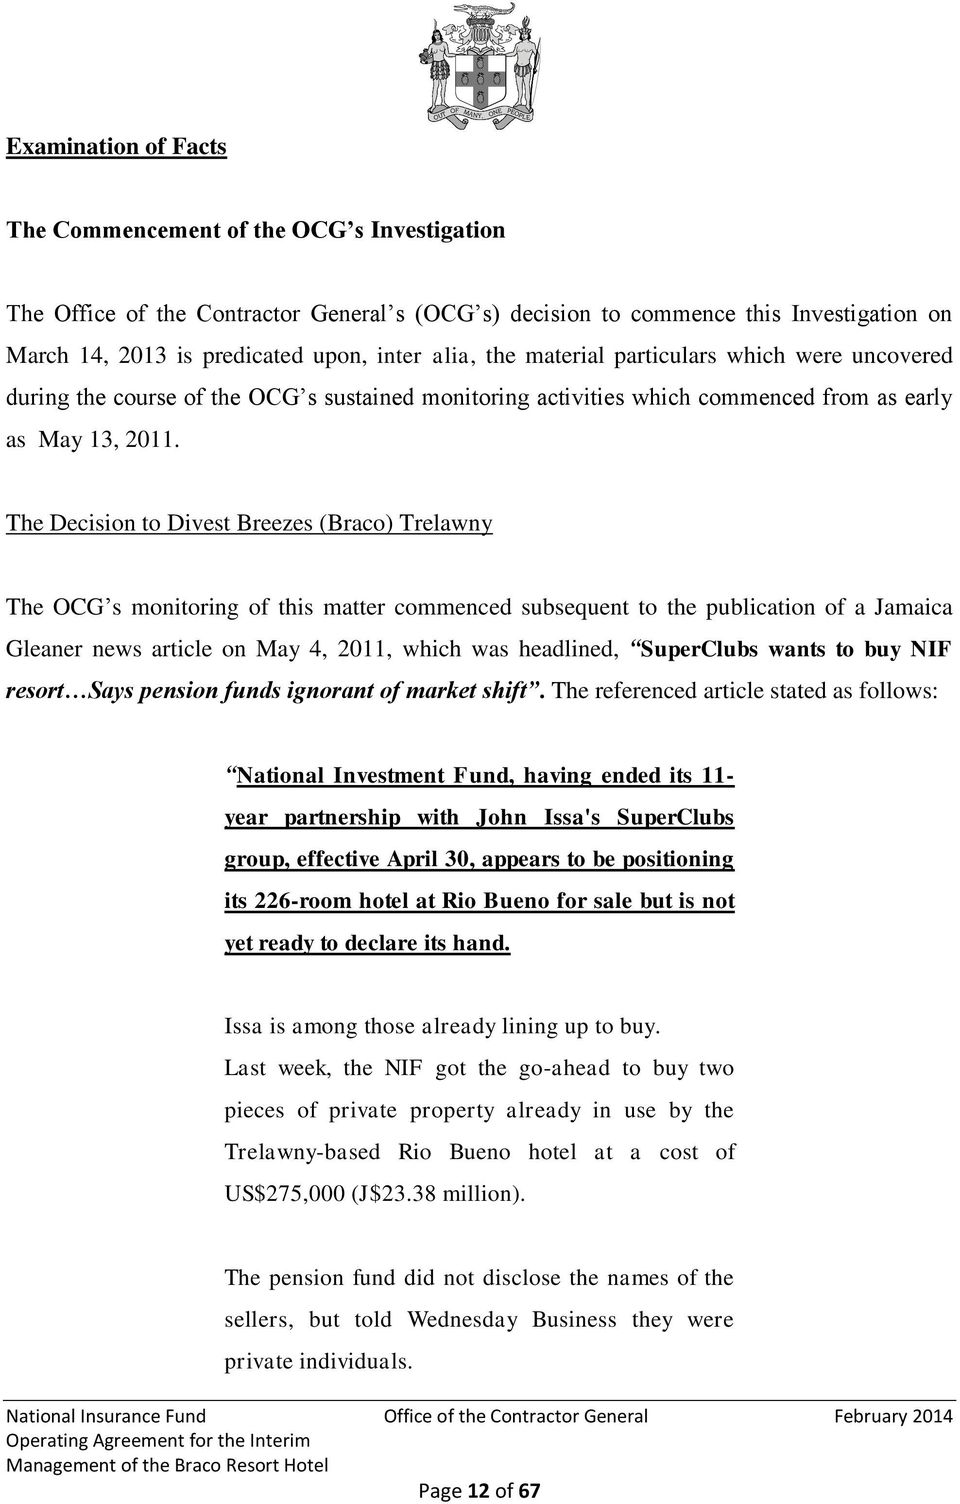 OFFICE OF THE CONTRACTOR GENERAL OF JAMAICA  Special Report of